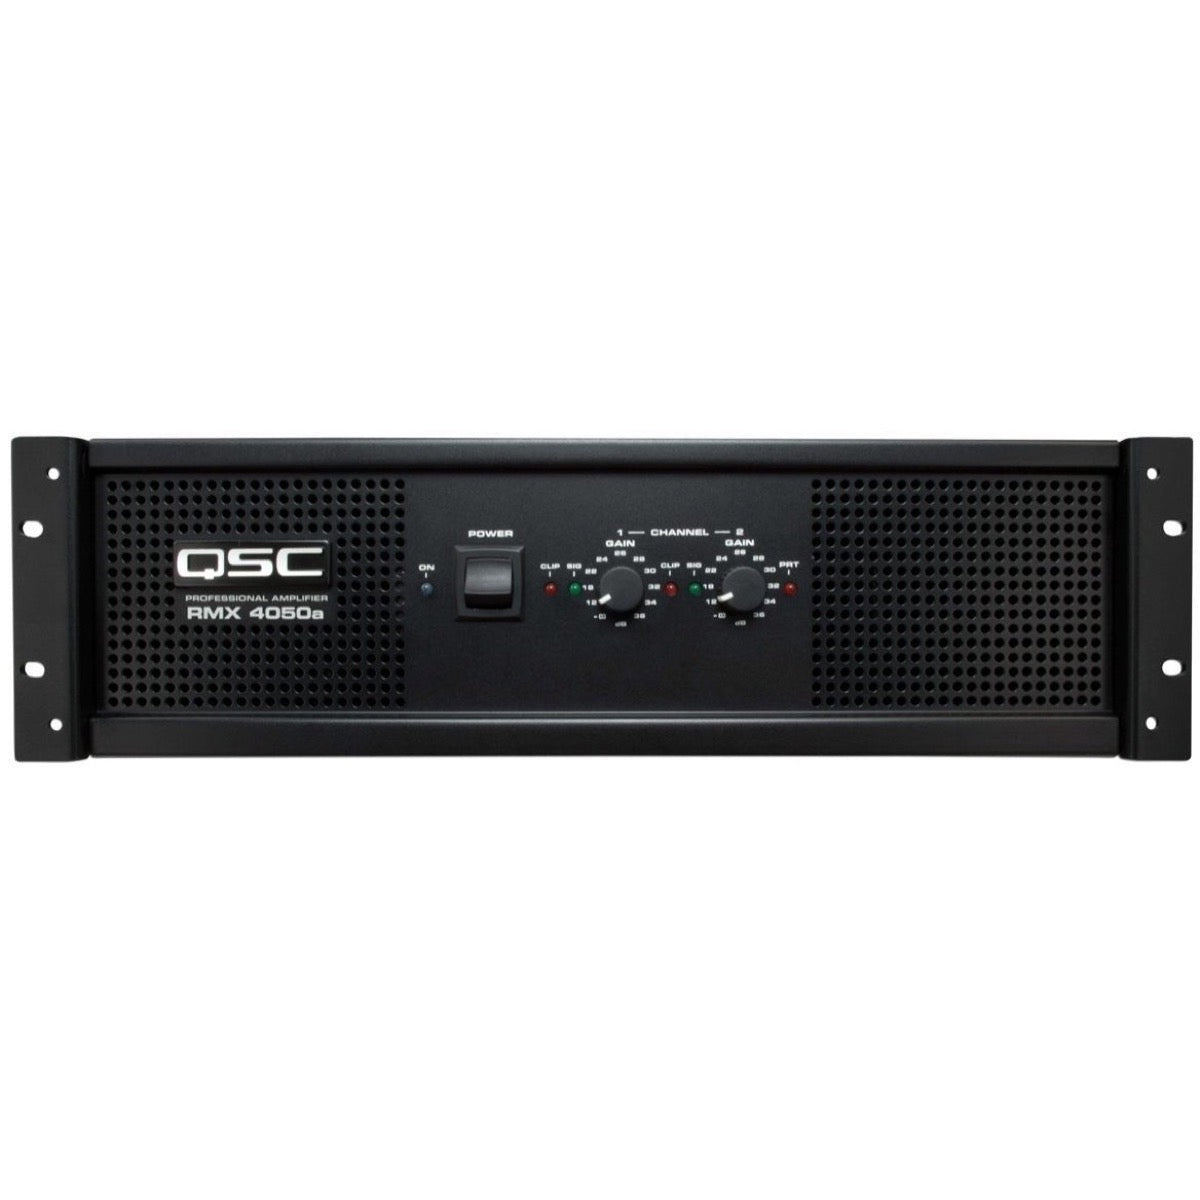 QSC RMX 4050a Power Amplifier